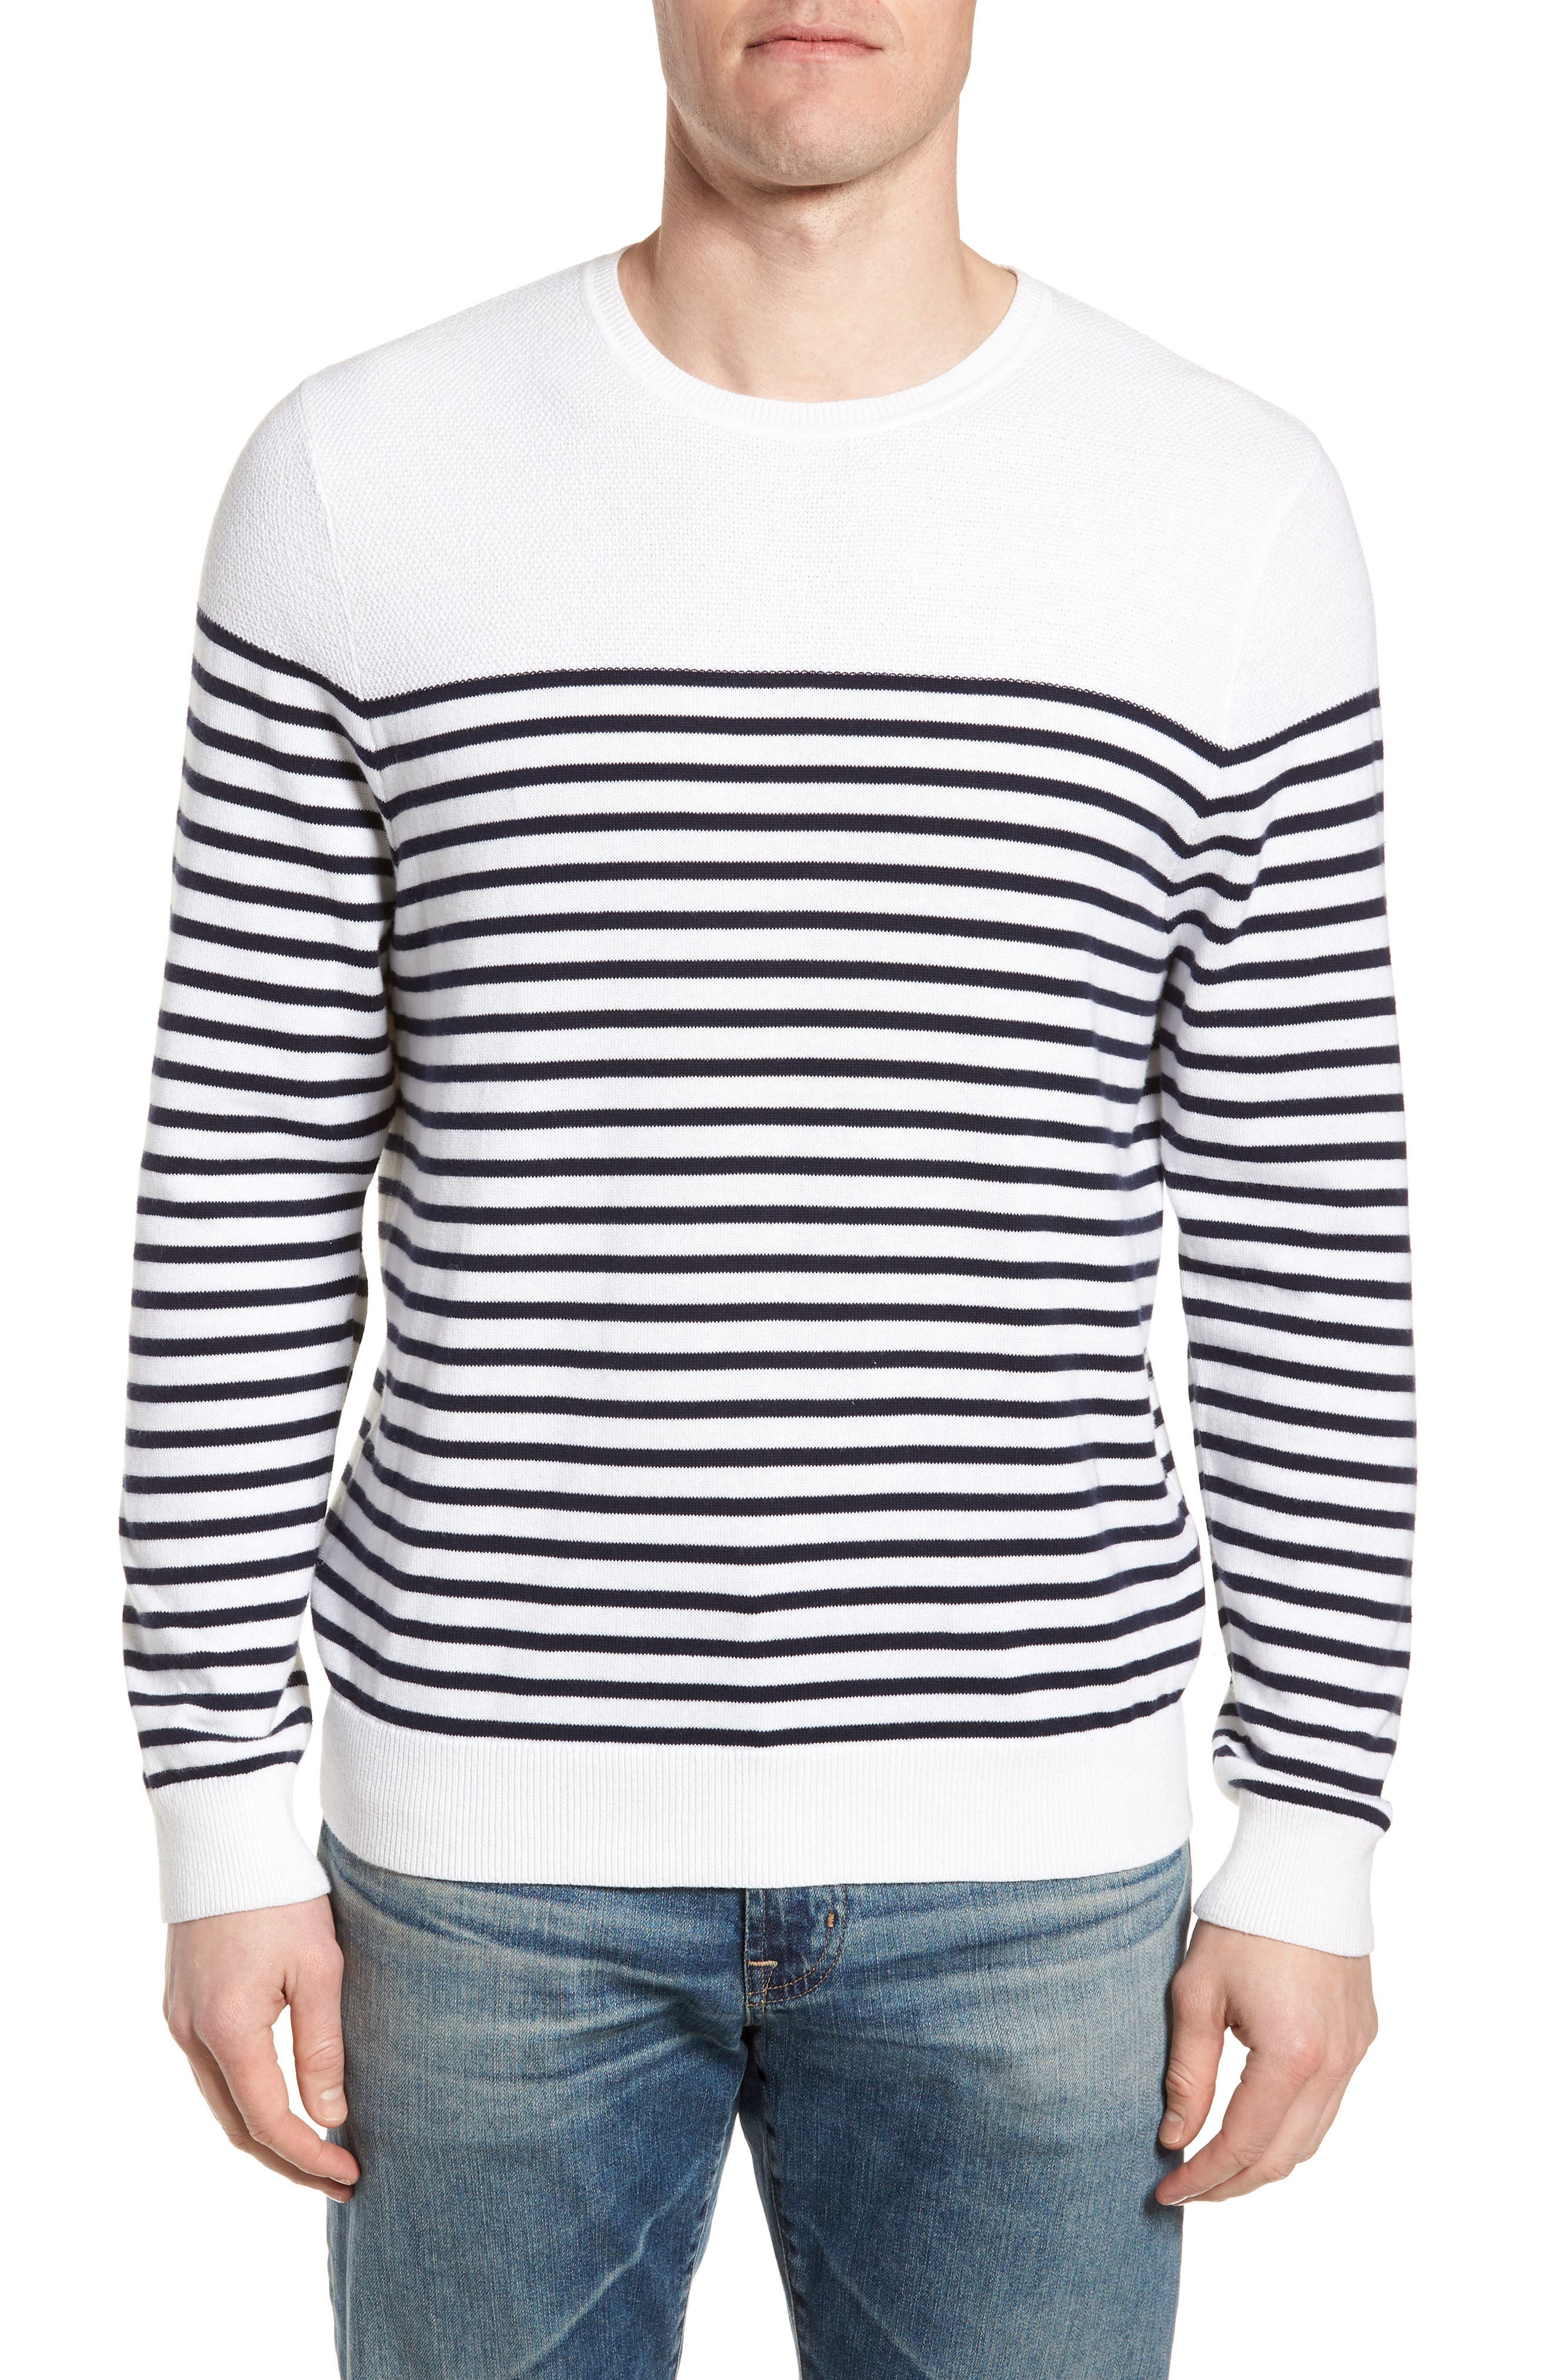 Nordstrom Men's Shop Breton Stripe Sweater